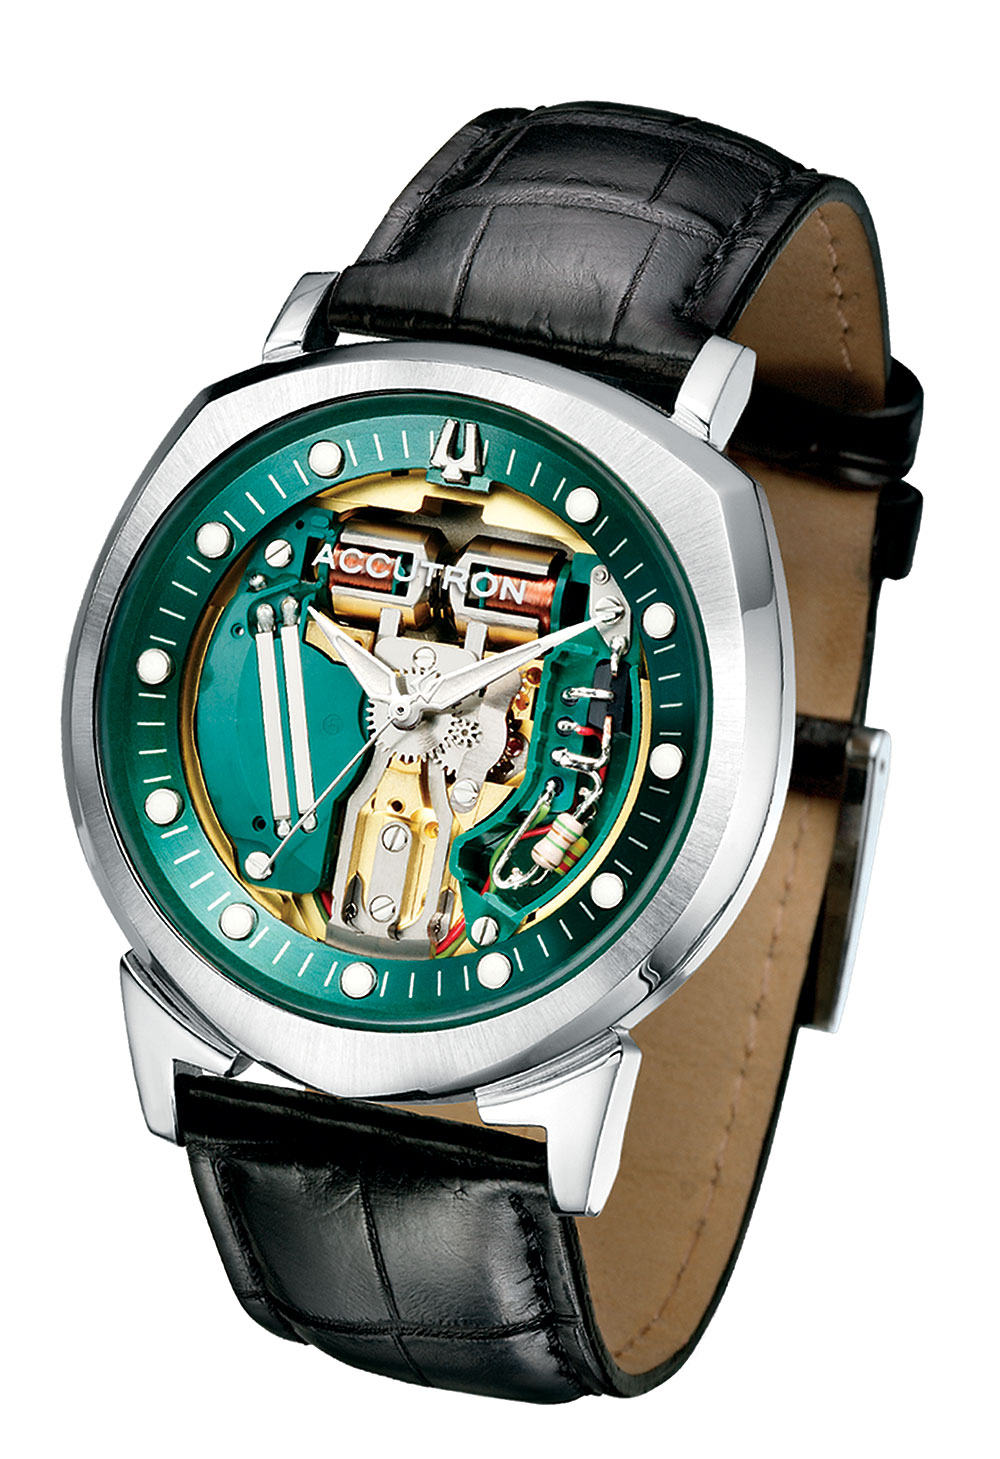 Bulova_Accutron_Spaceview_1000